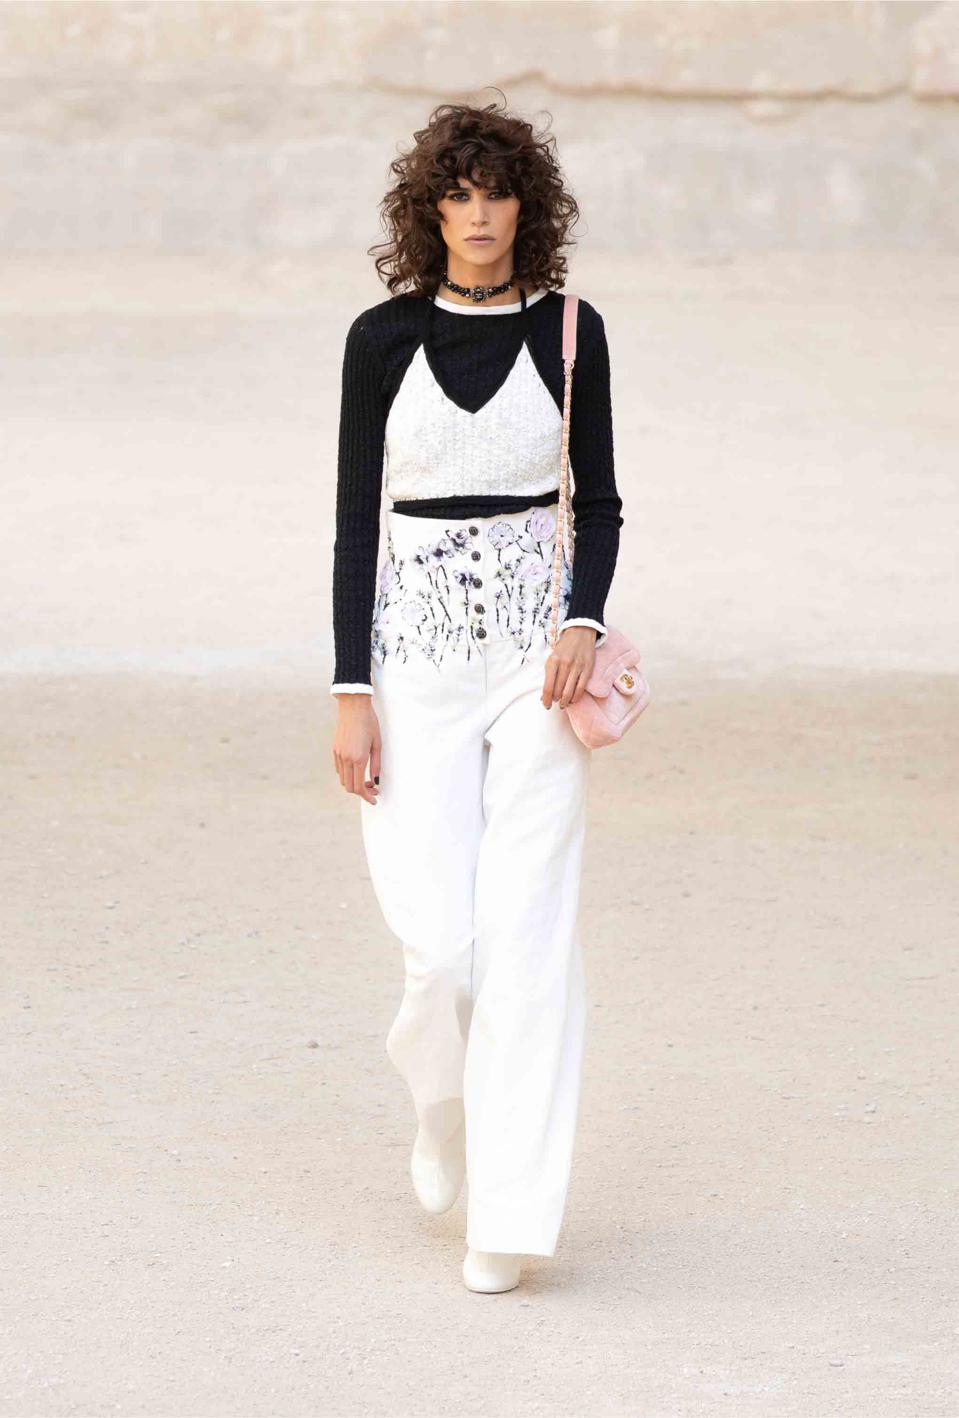 Mica Arganaraz is wearing a cotton palazzo trousers with a leafy wildflowers embroidered with beaded stems and sequins petals bloom around the waist, representing the flowers of Provence, paired with a two-tone top and sweater